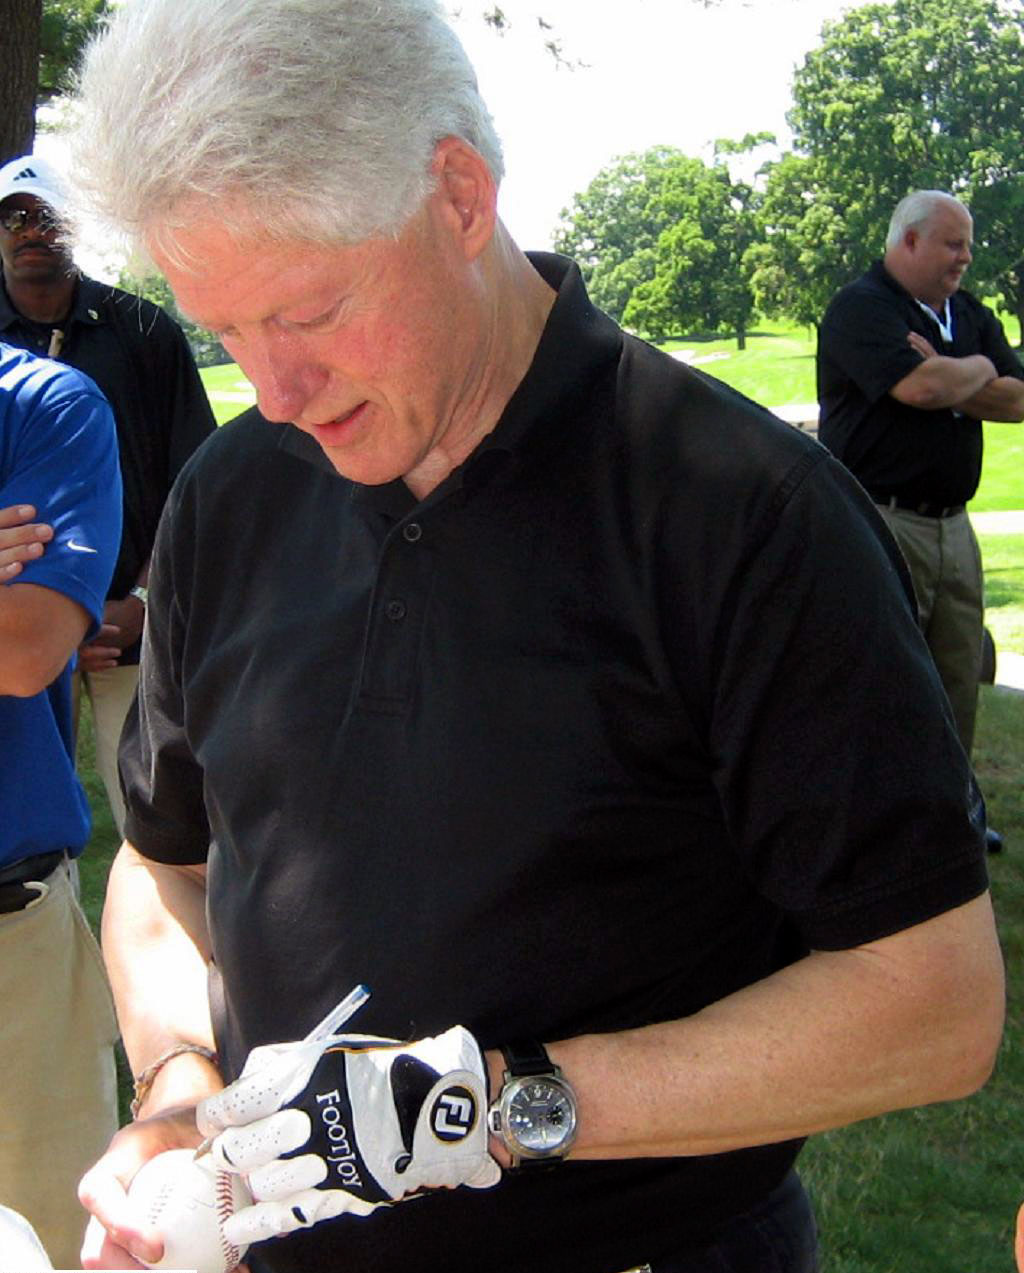 Bill-Clinton-Golf-Panerai.jpg